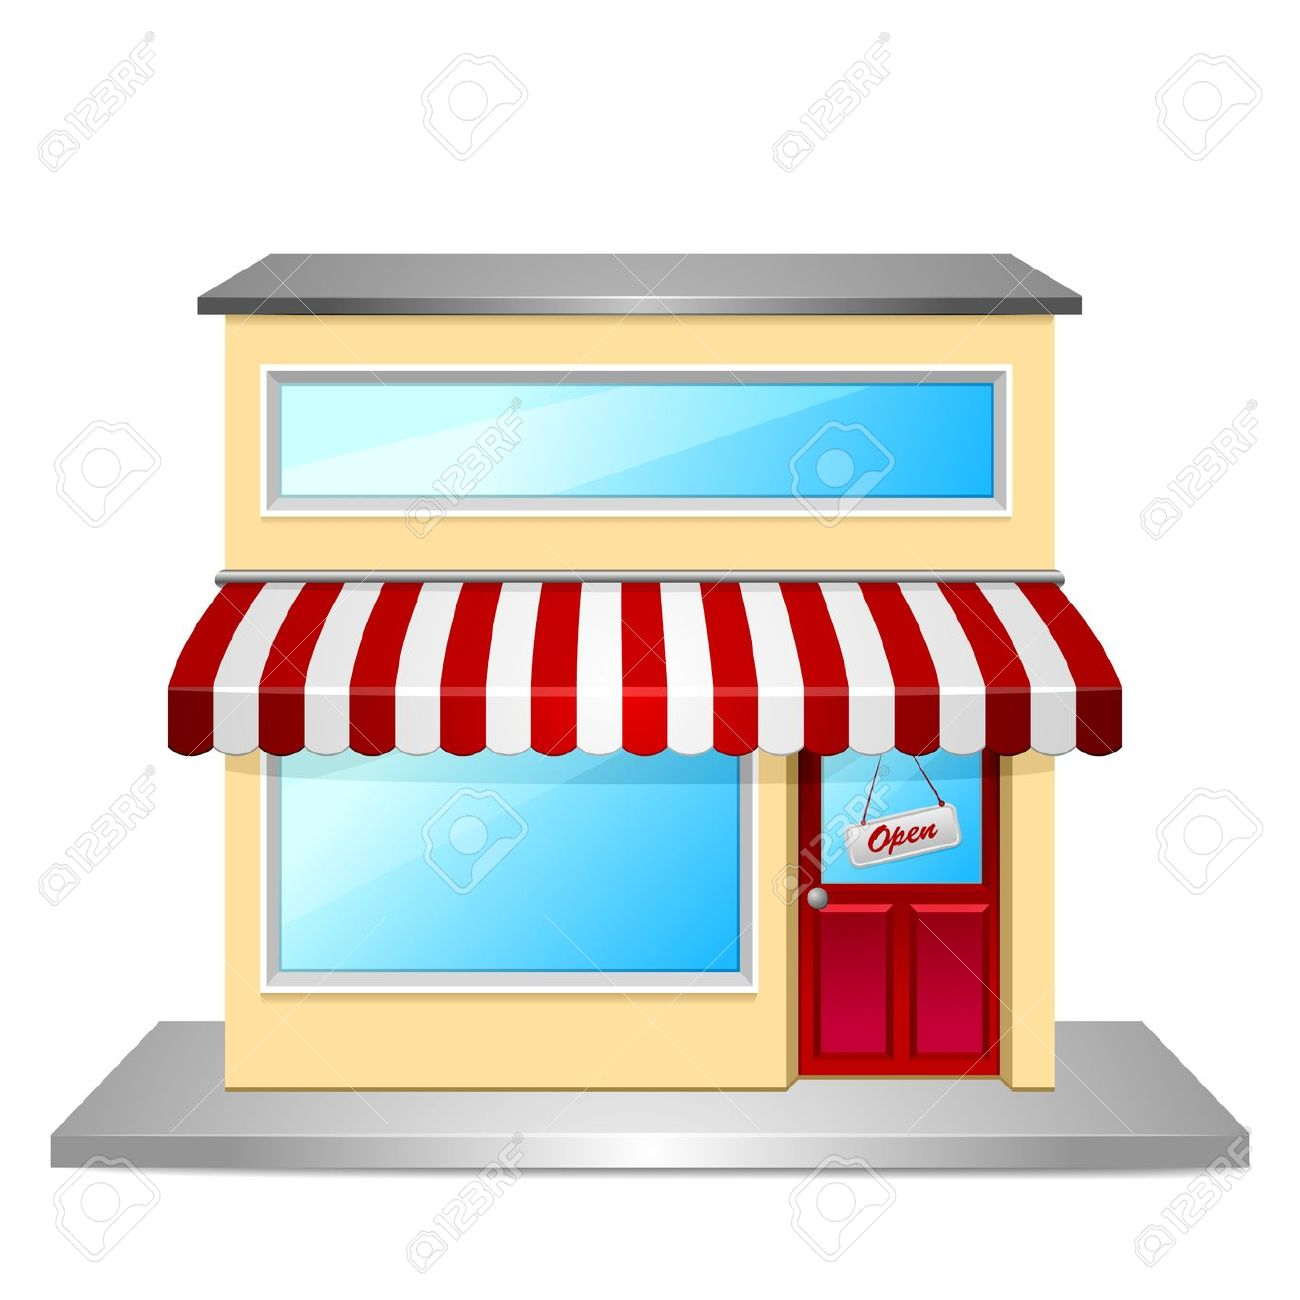 Shop front clipart clipground for Outlet design online